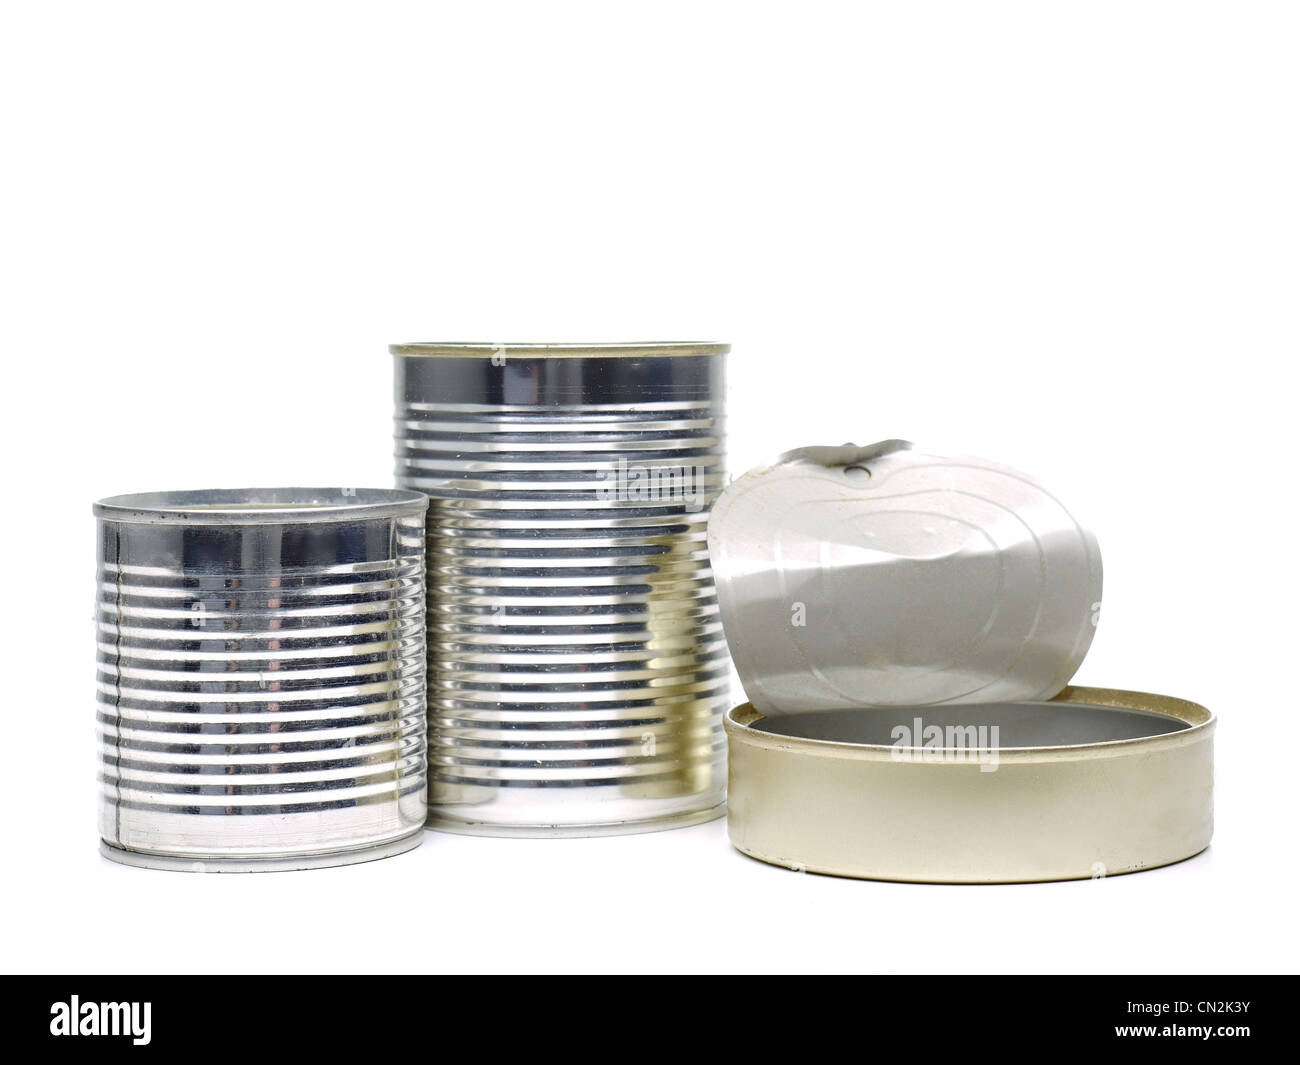 Empty food cans shot on white background - Stock Image